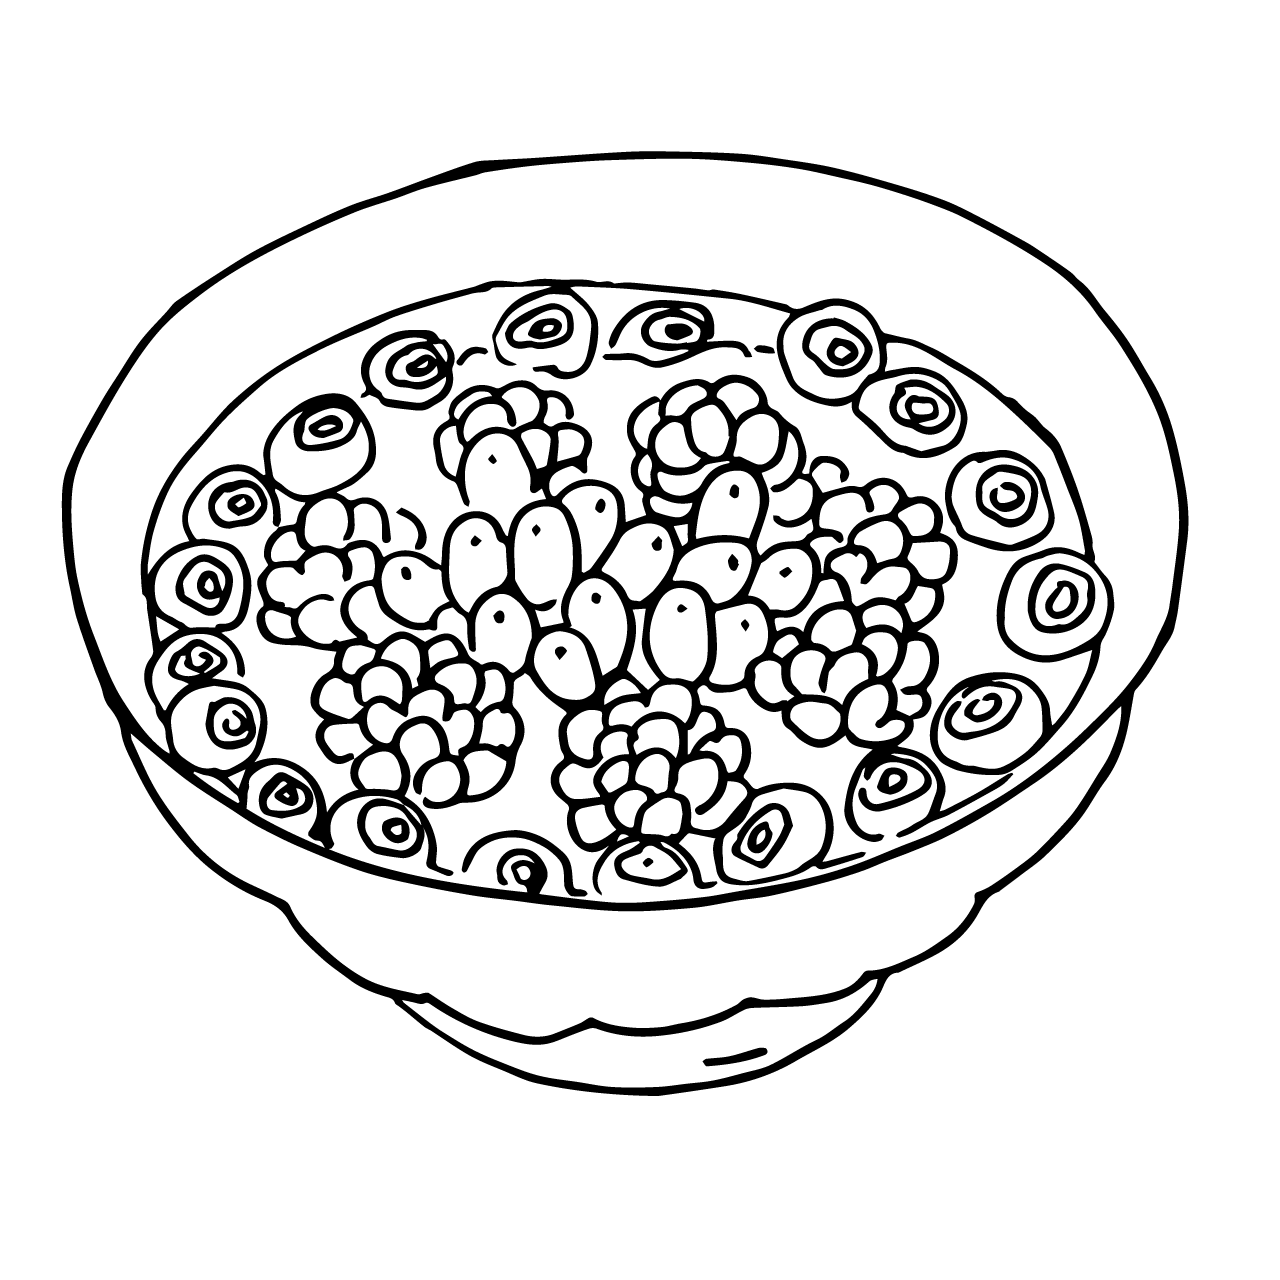 Beeren Bowl Illustration